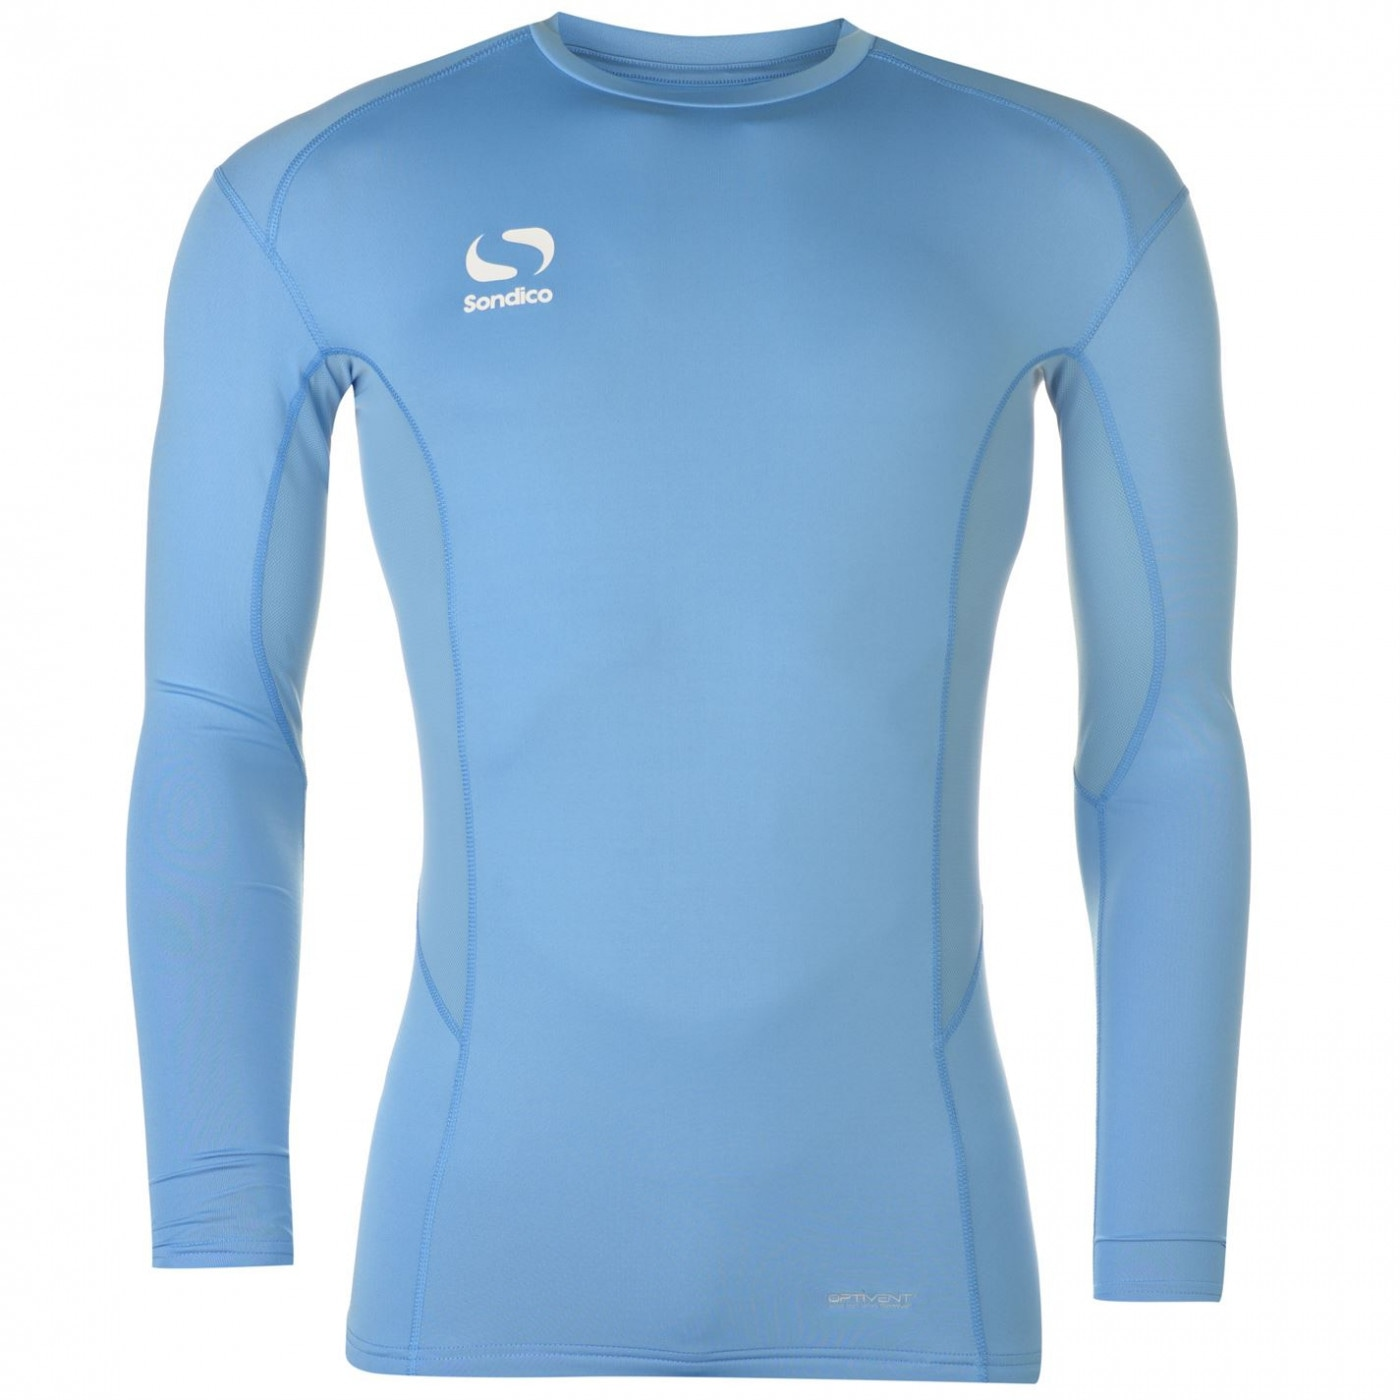 Sondico Base Core Long Sleeve Base Layer